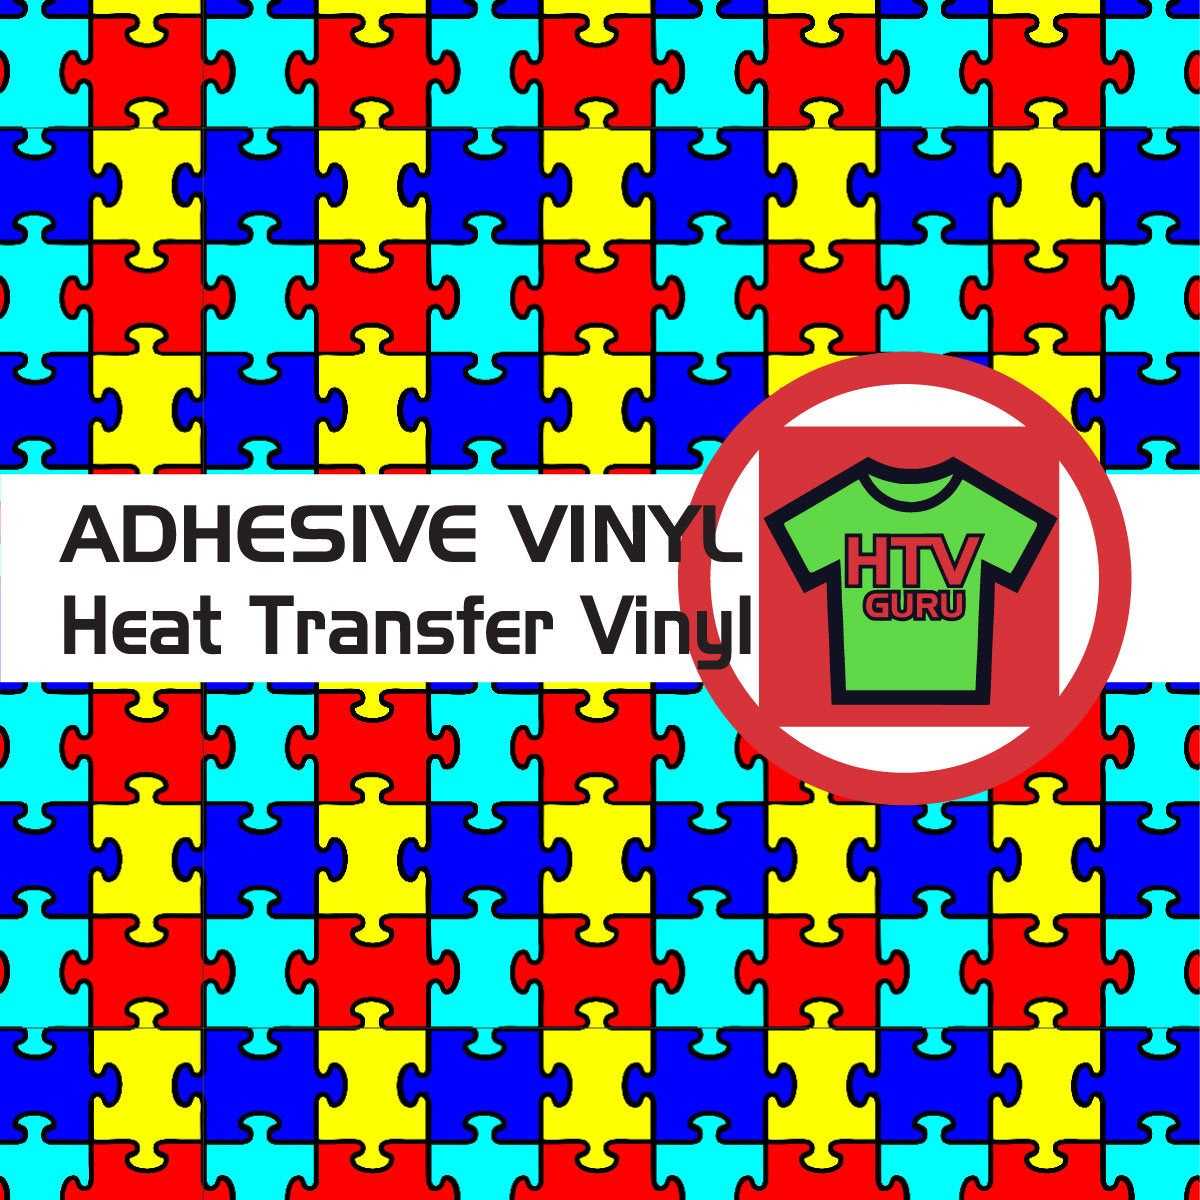 Puzzle Piece Autism Pattern Htv And Outdoor Vinyl Sheets | Etsy - Puzzle Print Htv